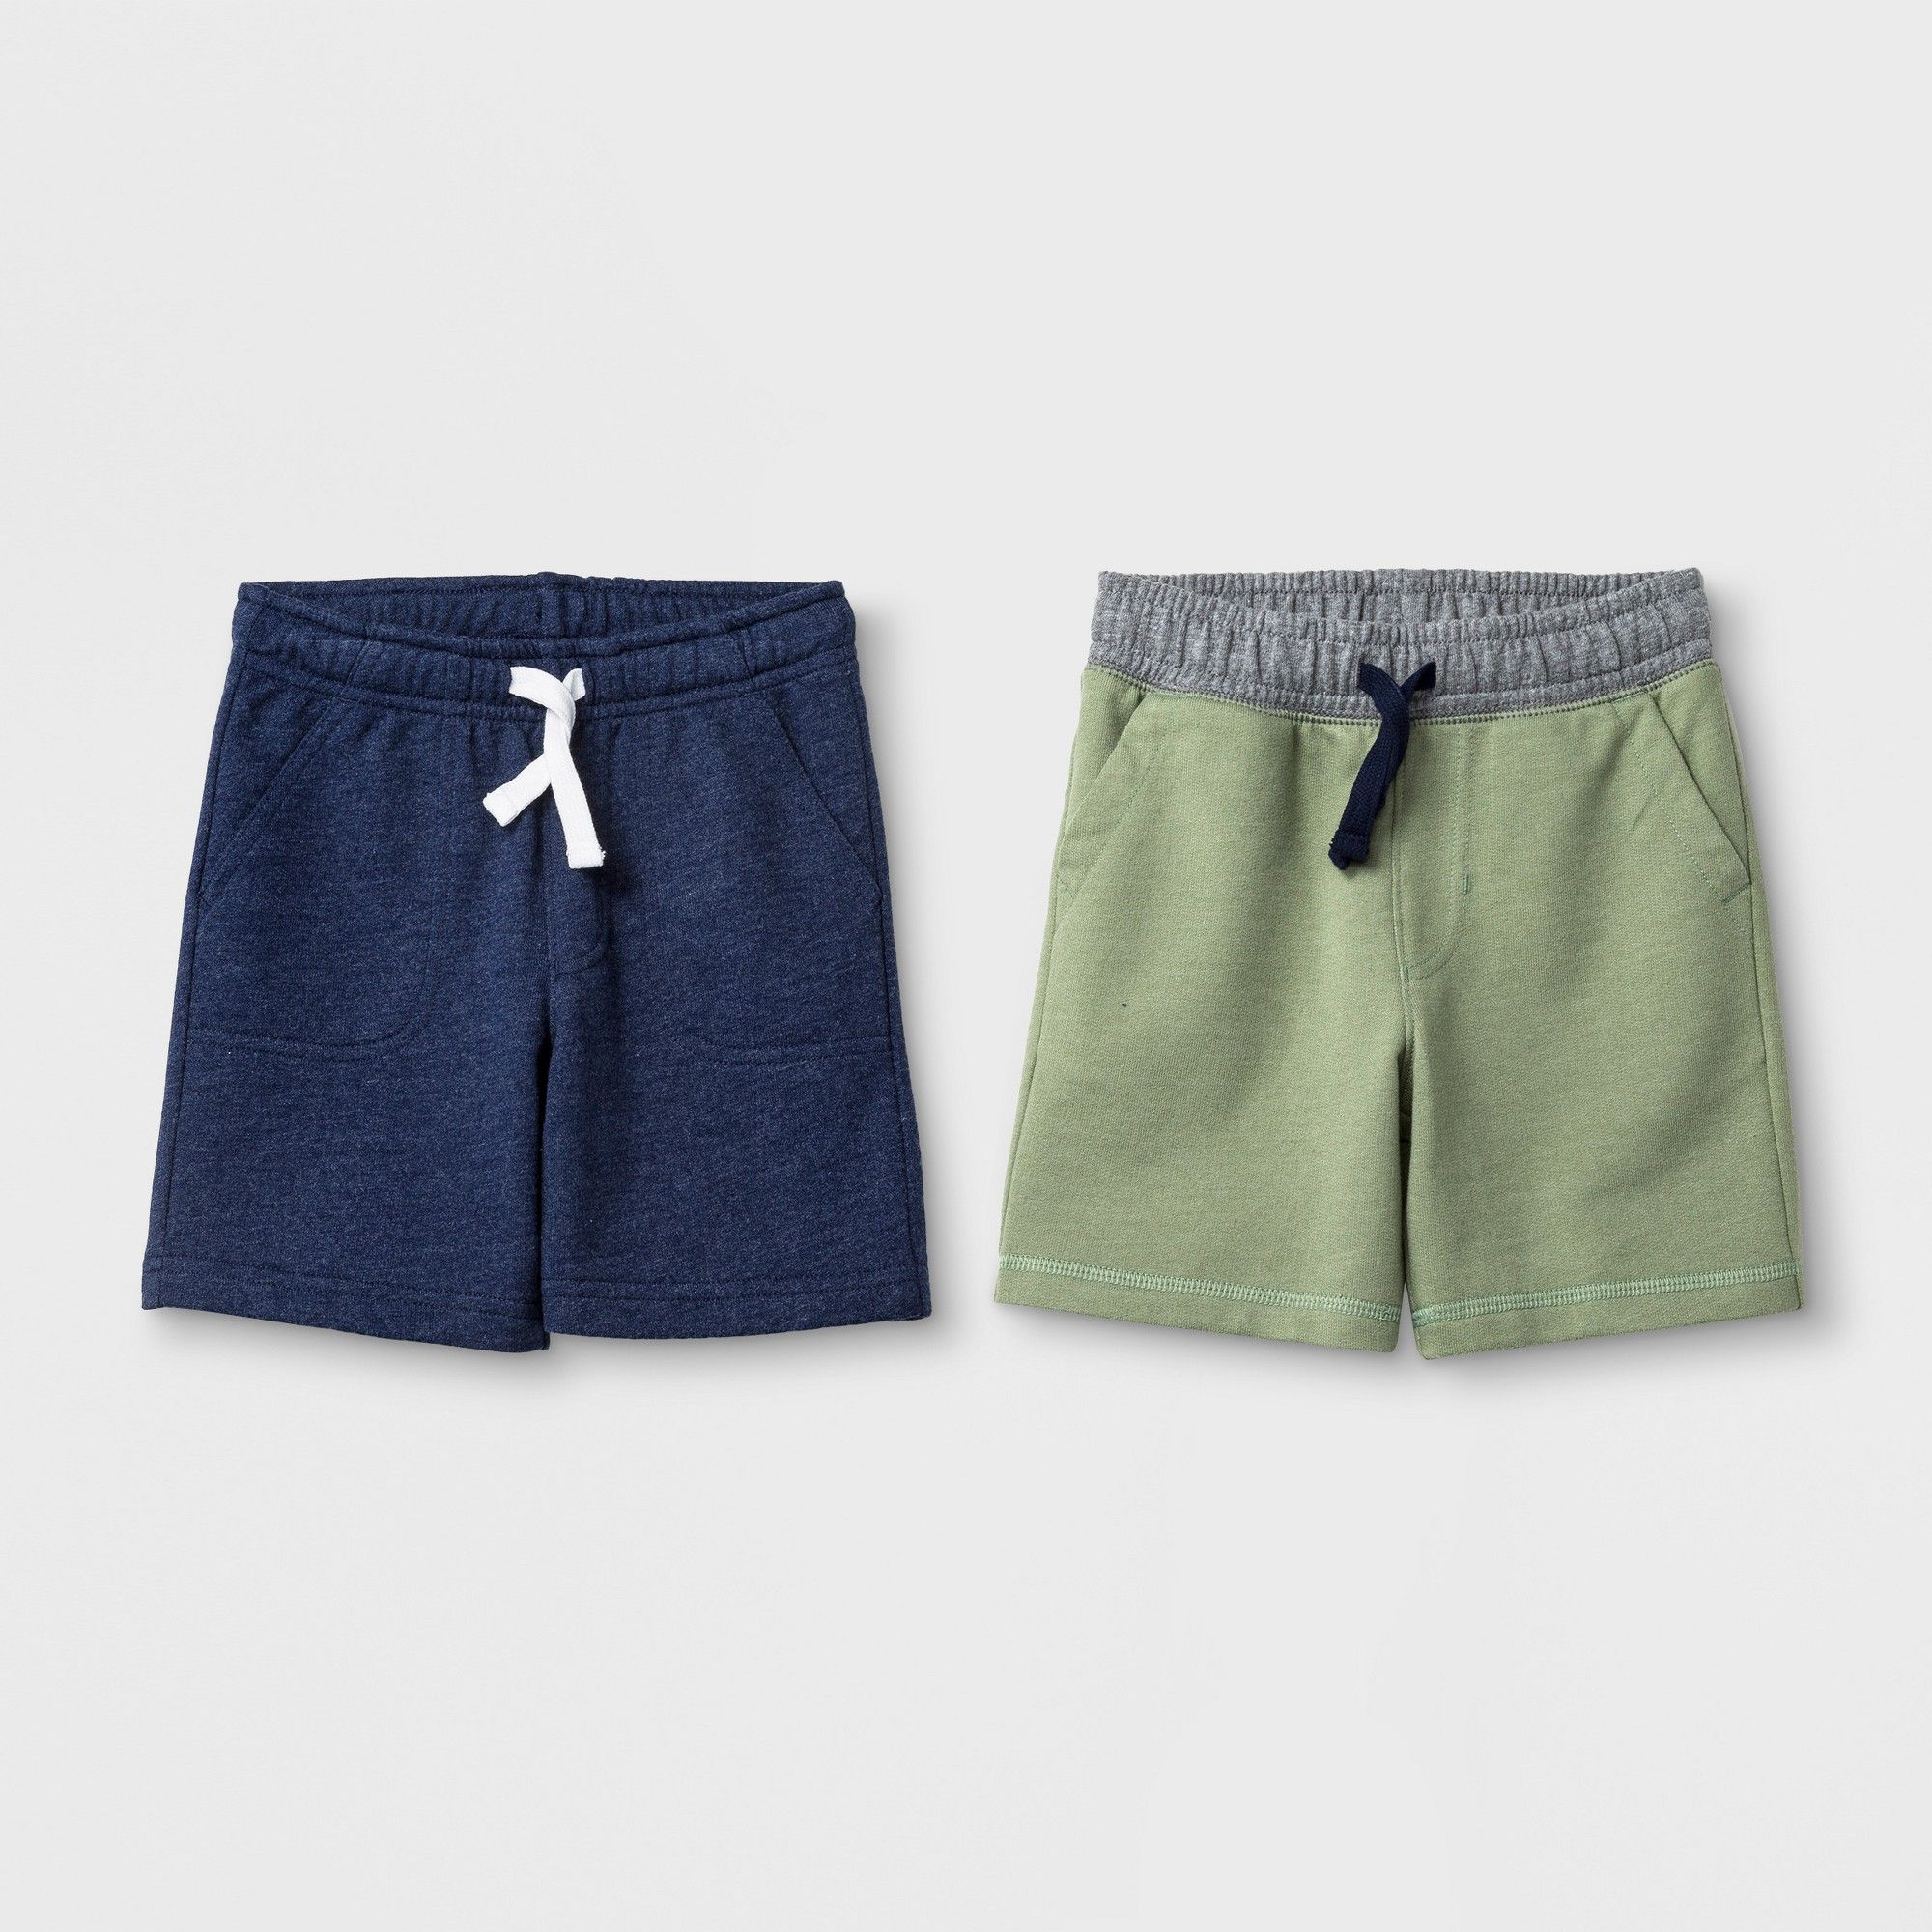 6e4ad0447 Toddler Boys' Pull-On Shorts 2pk - Cat & Jack Sage 18 Months, Size: 18M,  Green